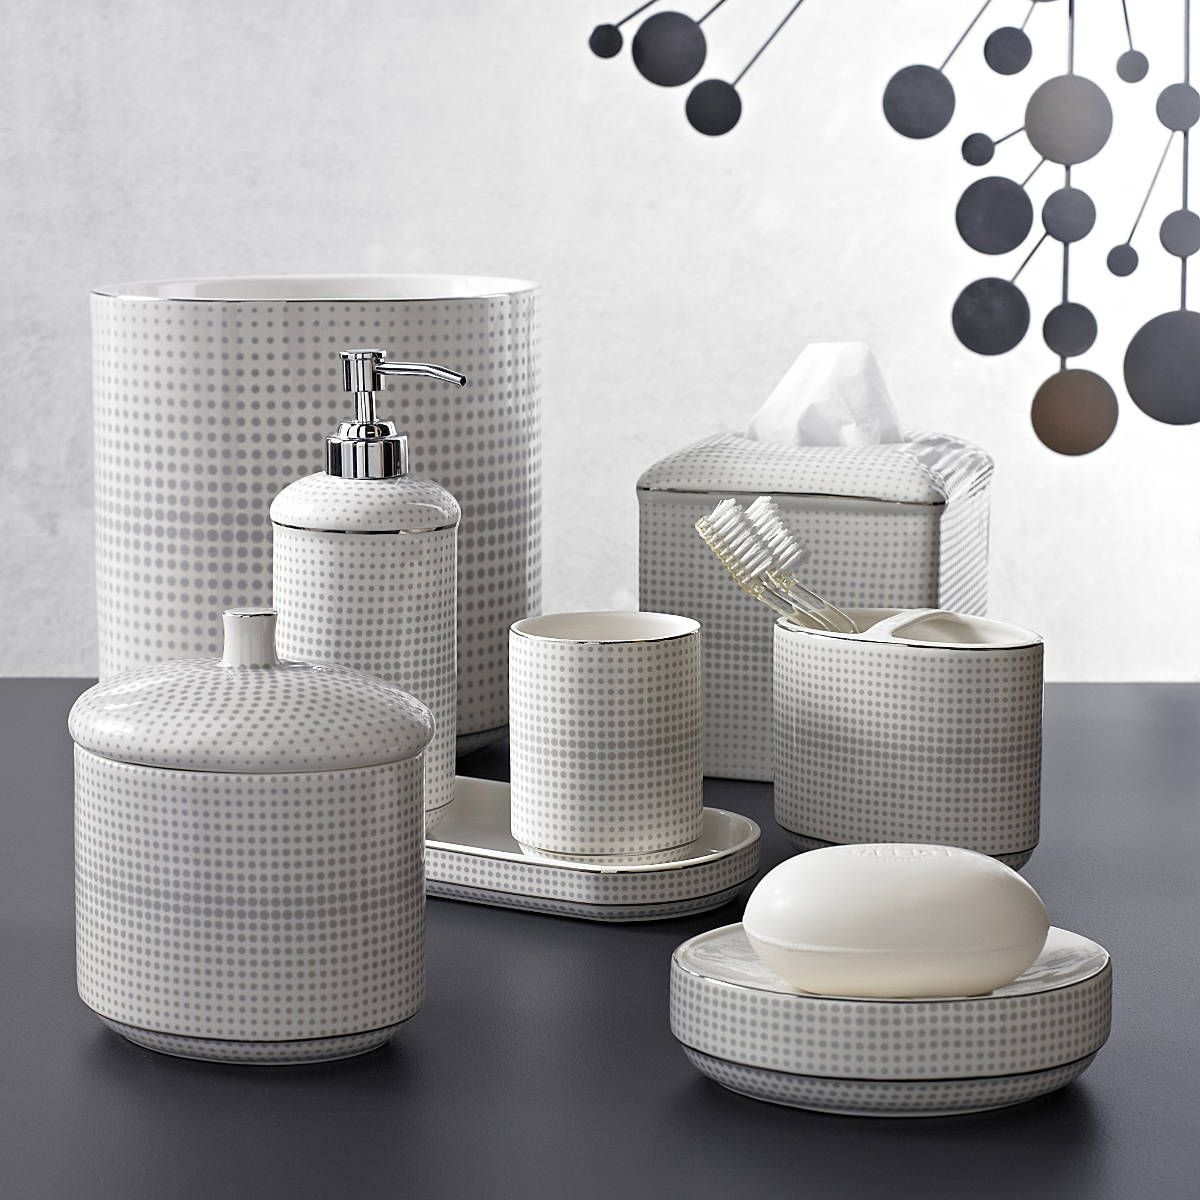 Shop for bathroom accessories - Crillon By Kassatex Shop Porcelain Bath Accessories Kassatex